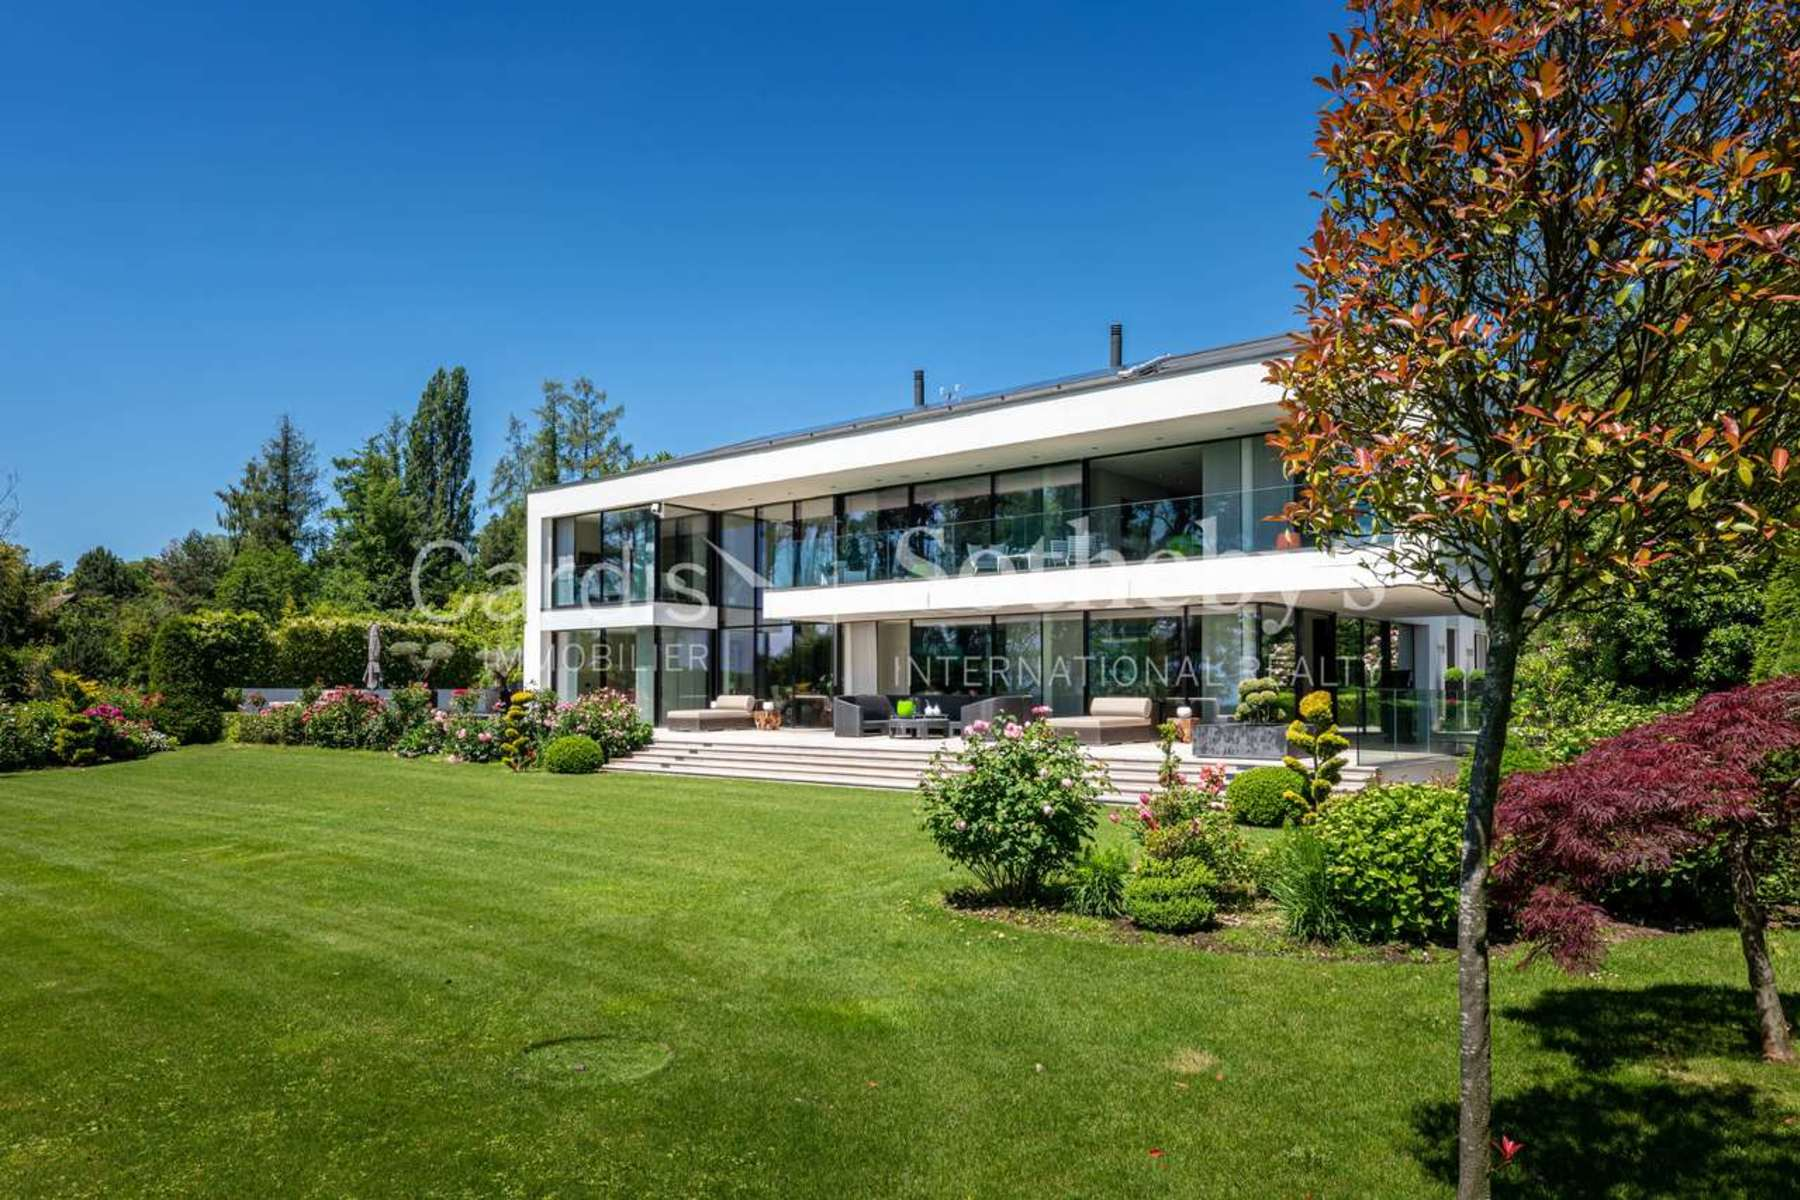 Single Family Homes for Active at W A T E R F R O N T Morges Morges, Vaud 1110 Switzerland